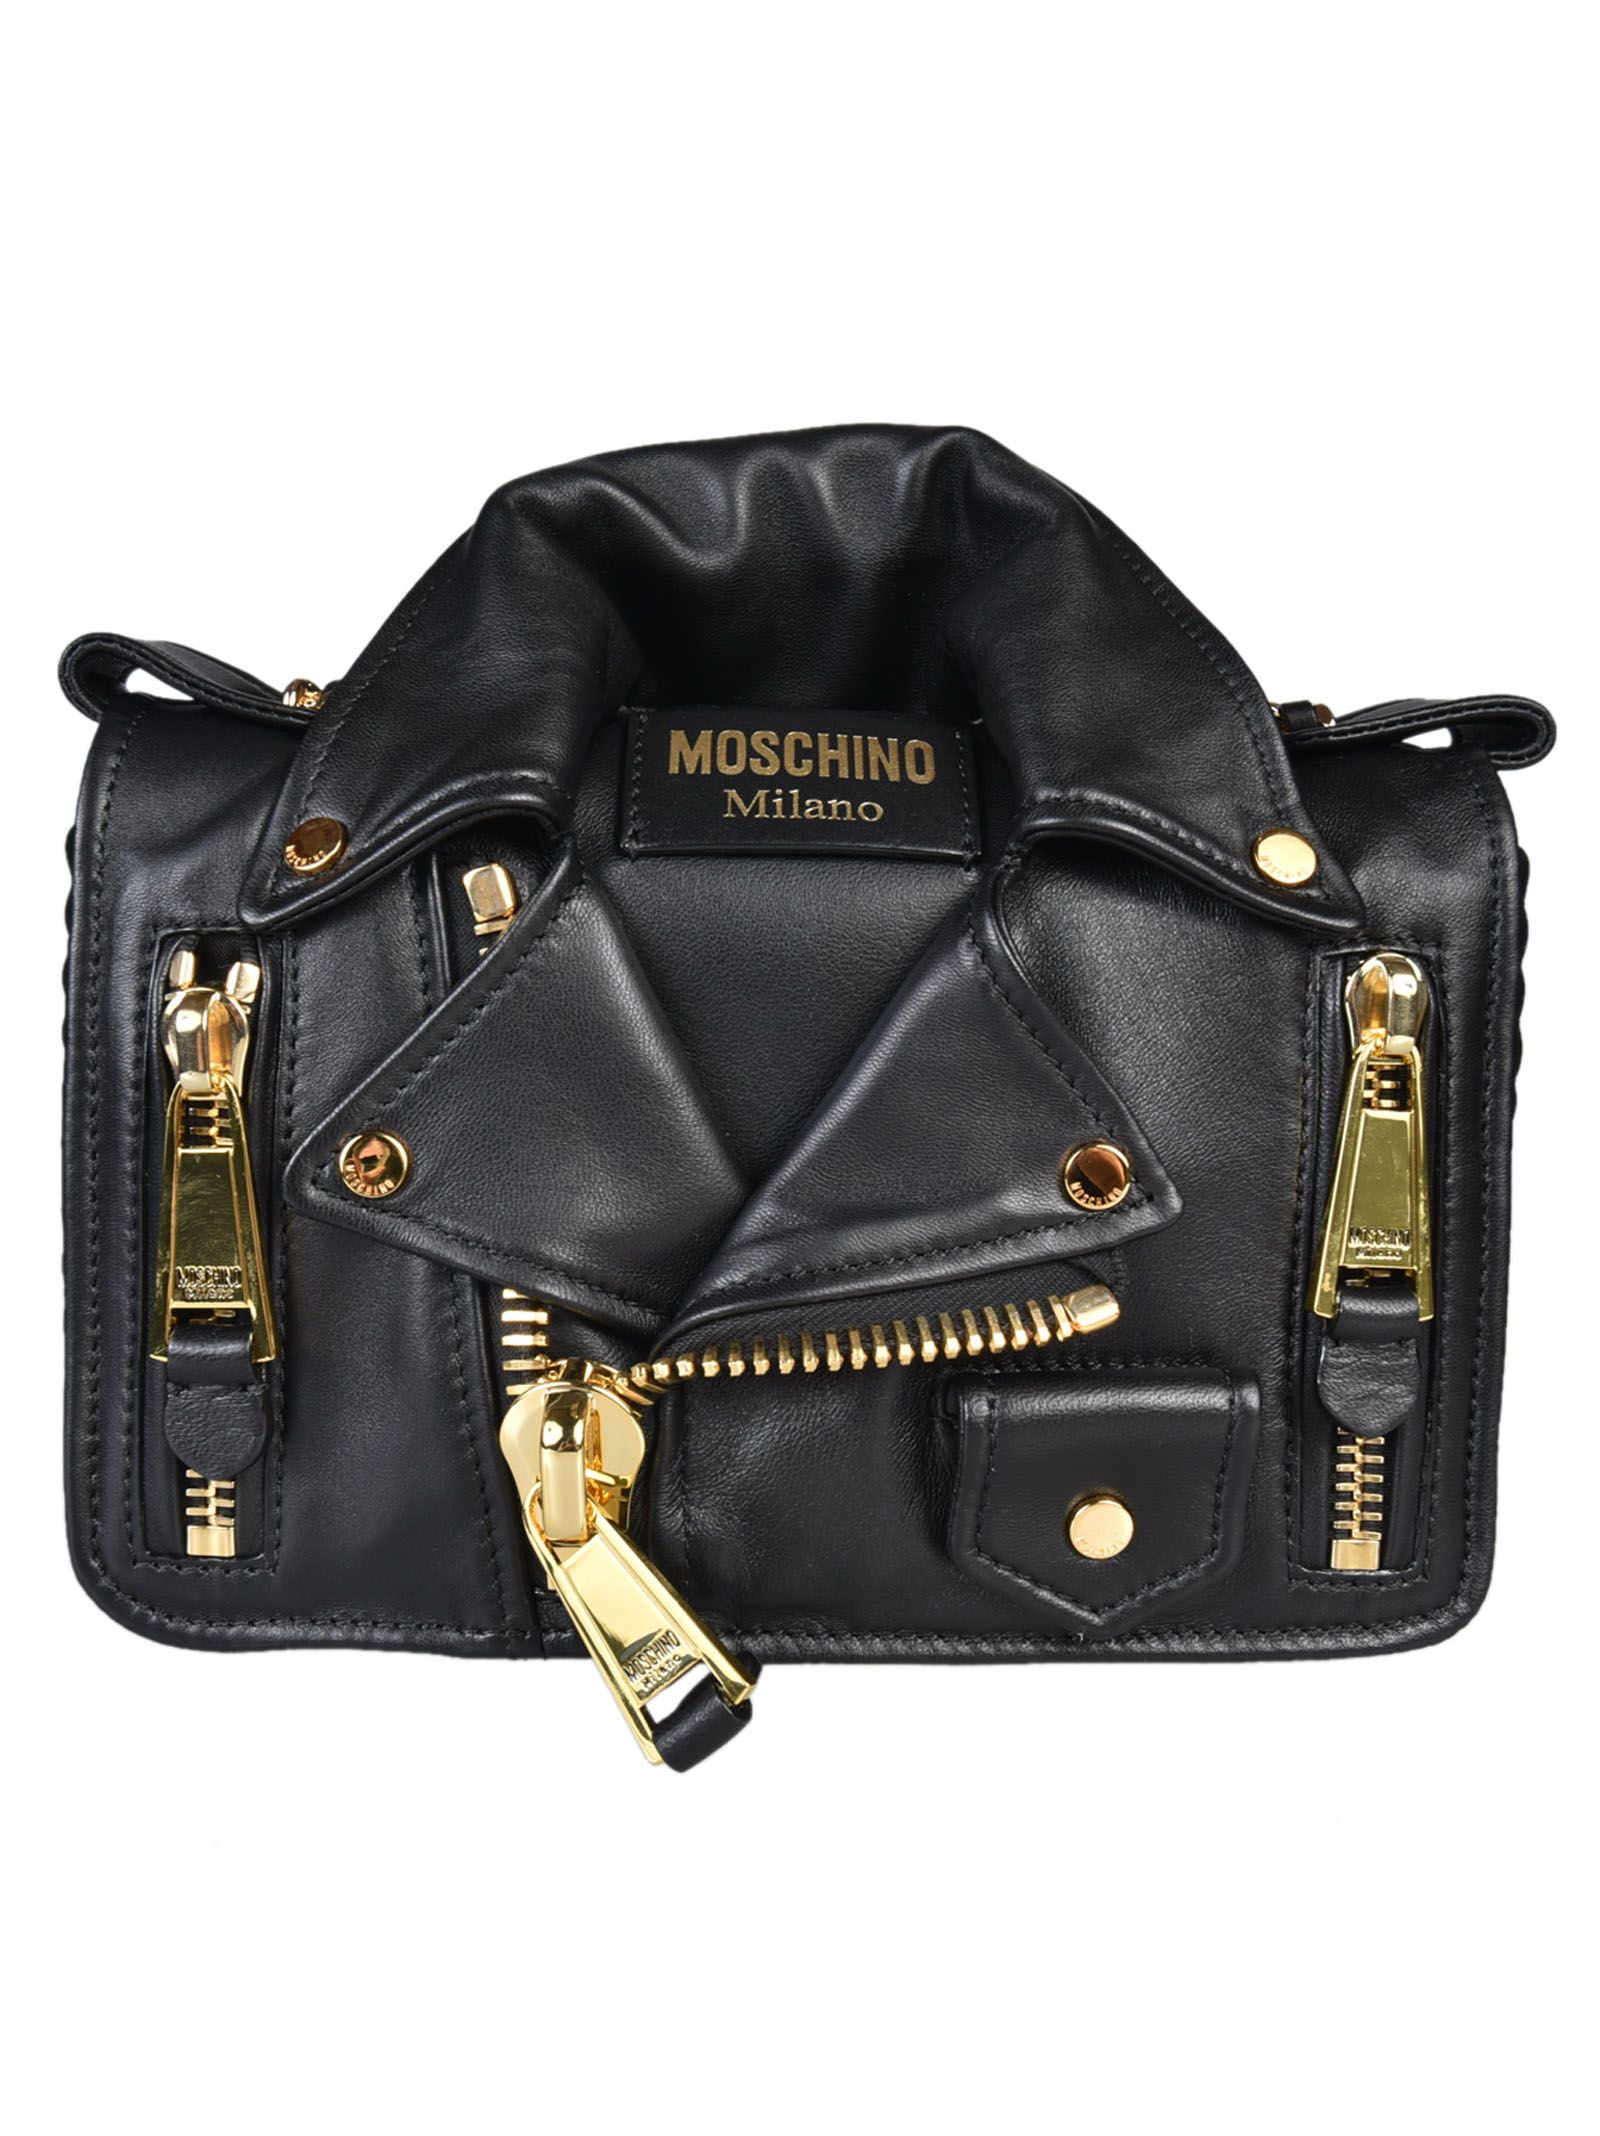 Clutch Bag On Sale, Black, Leather, 2017, one size Moschino